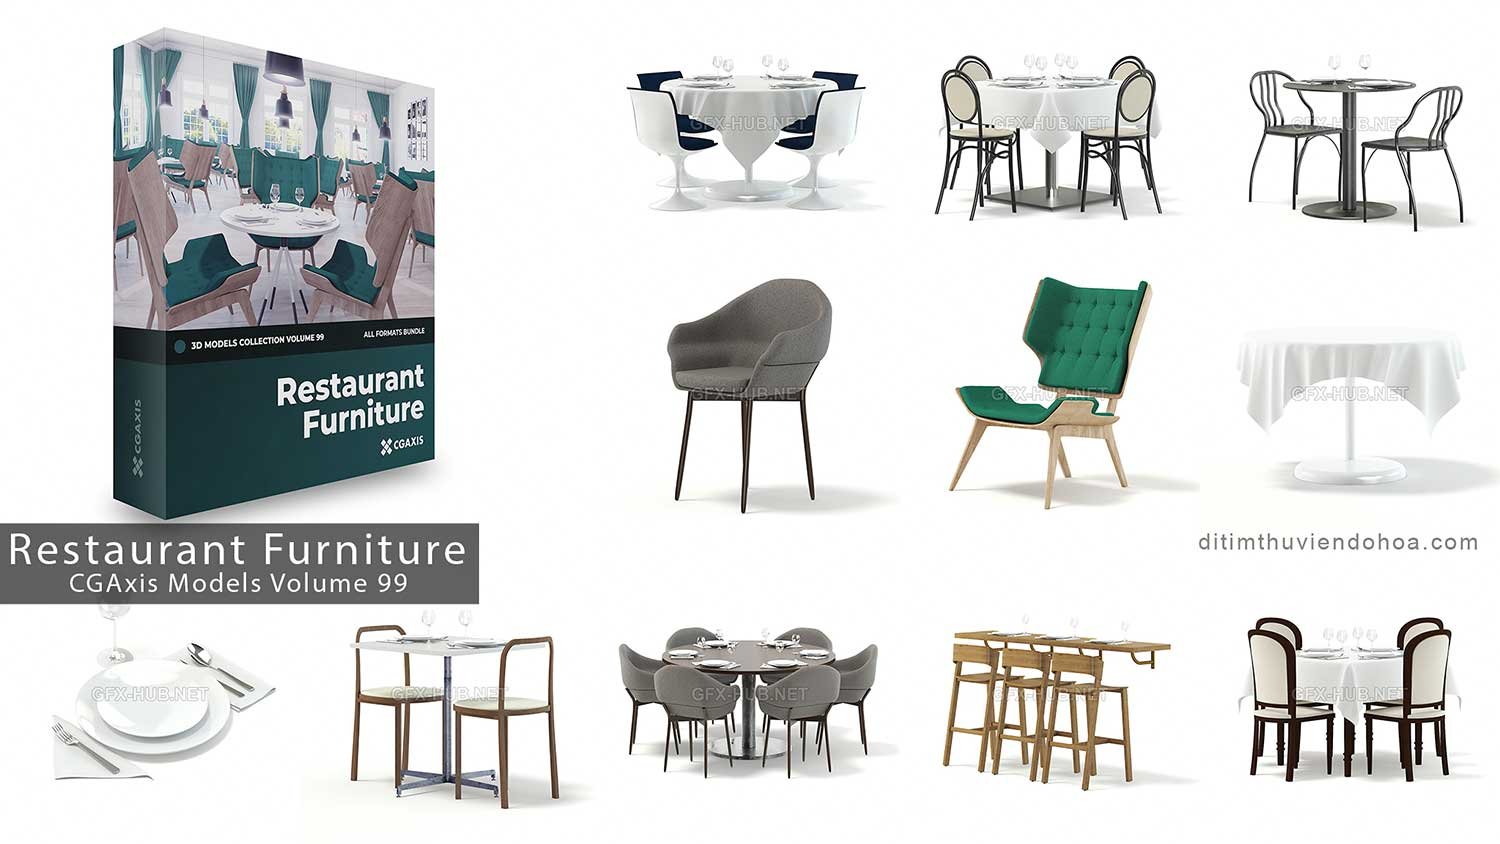 CGAxis Models Volume 99-Restaurant Furniture_Ditim